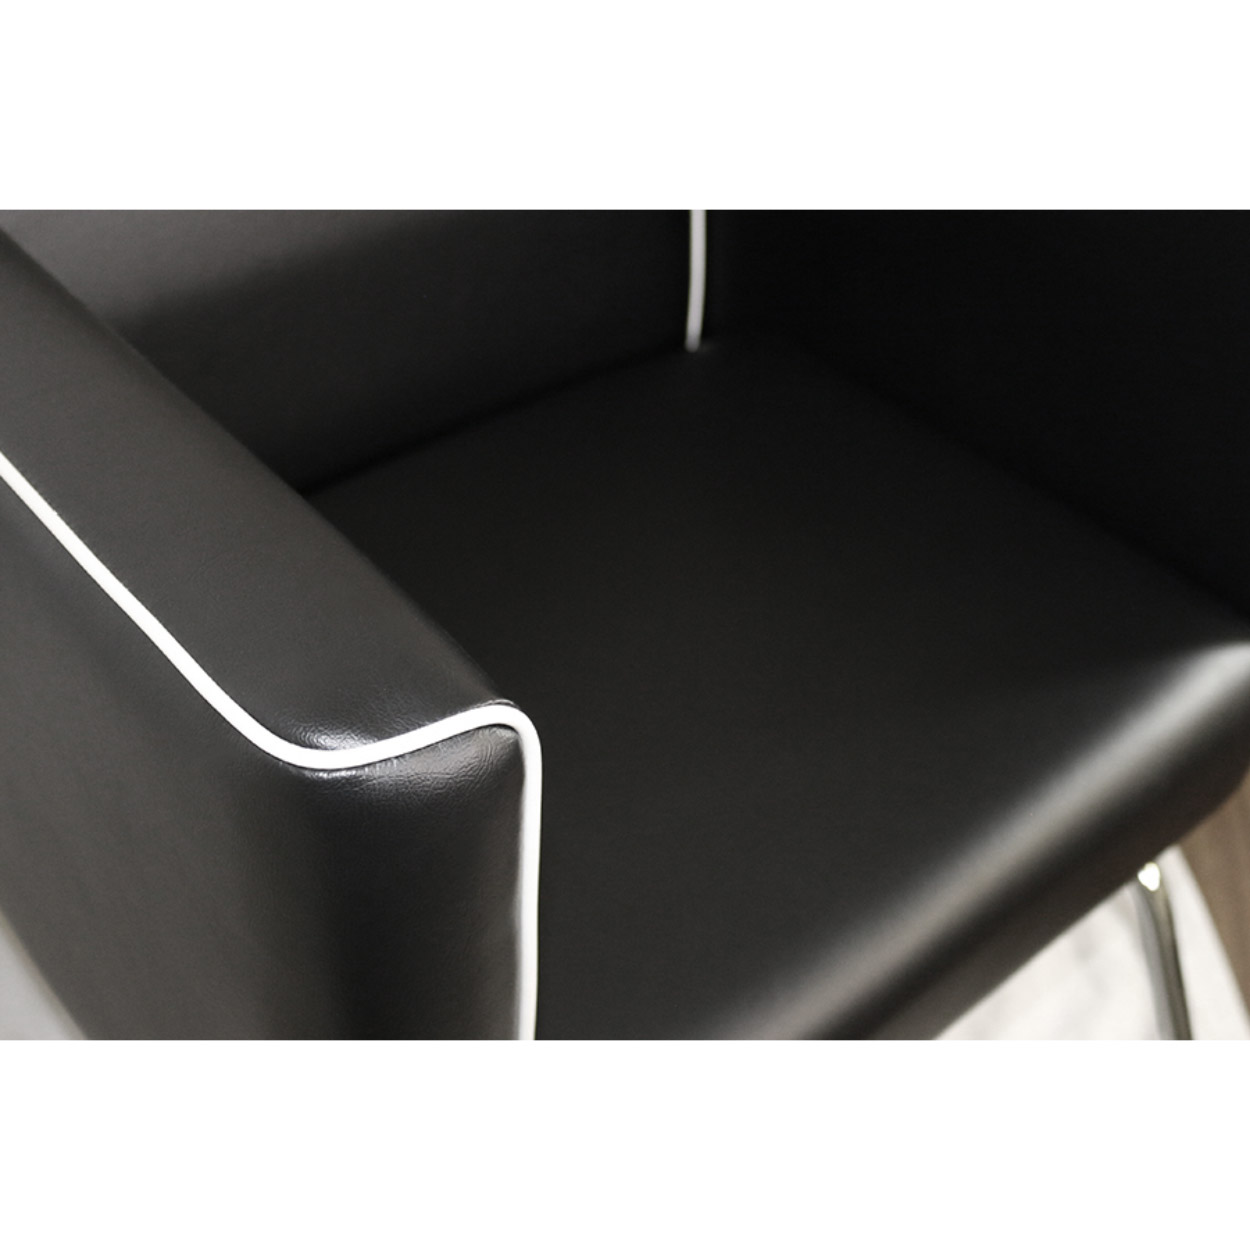 Takara Belmont Lusso Styling Chair alternative product image 1